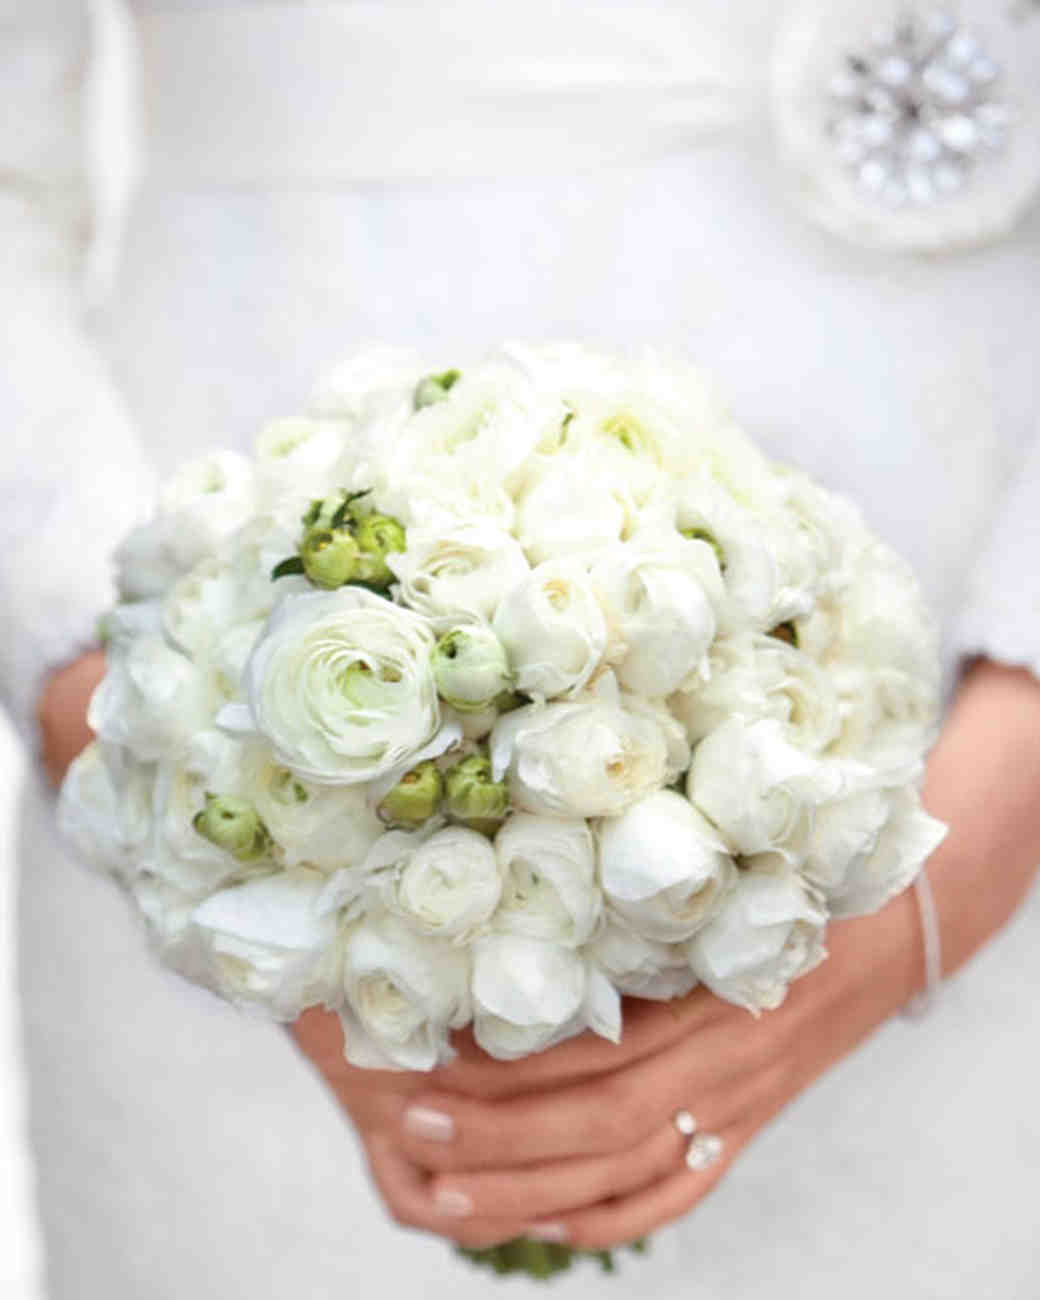 brides bouquet of white roses garden roses and peonies white